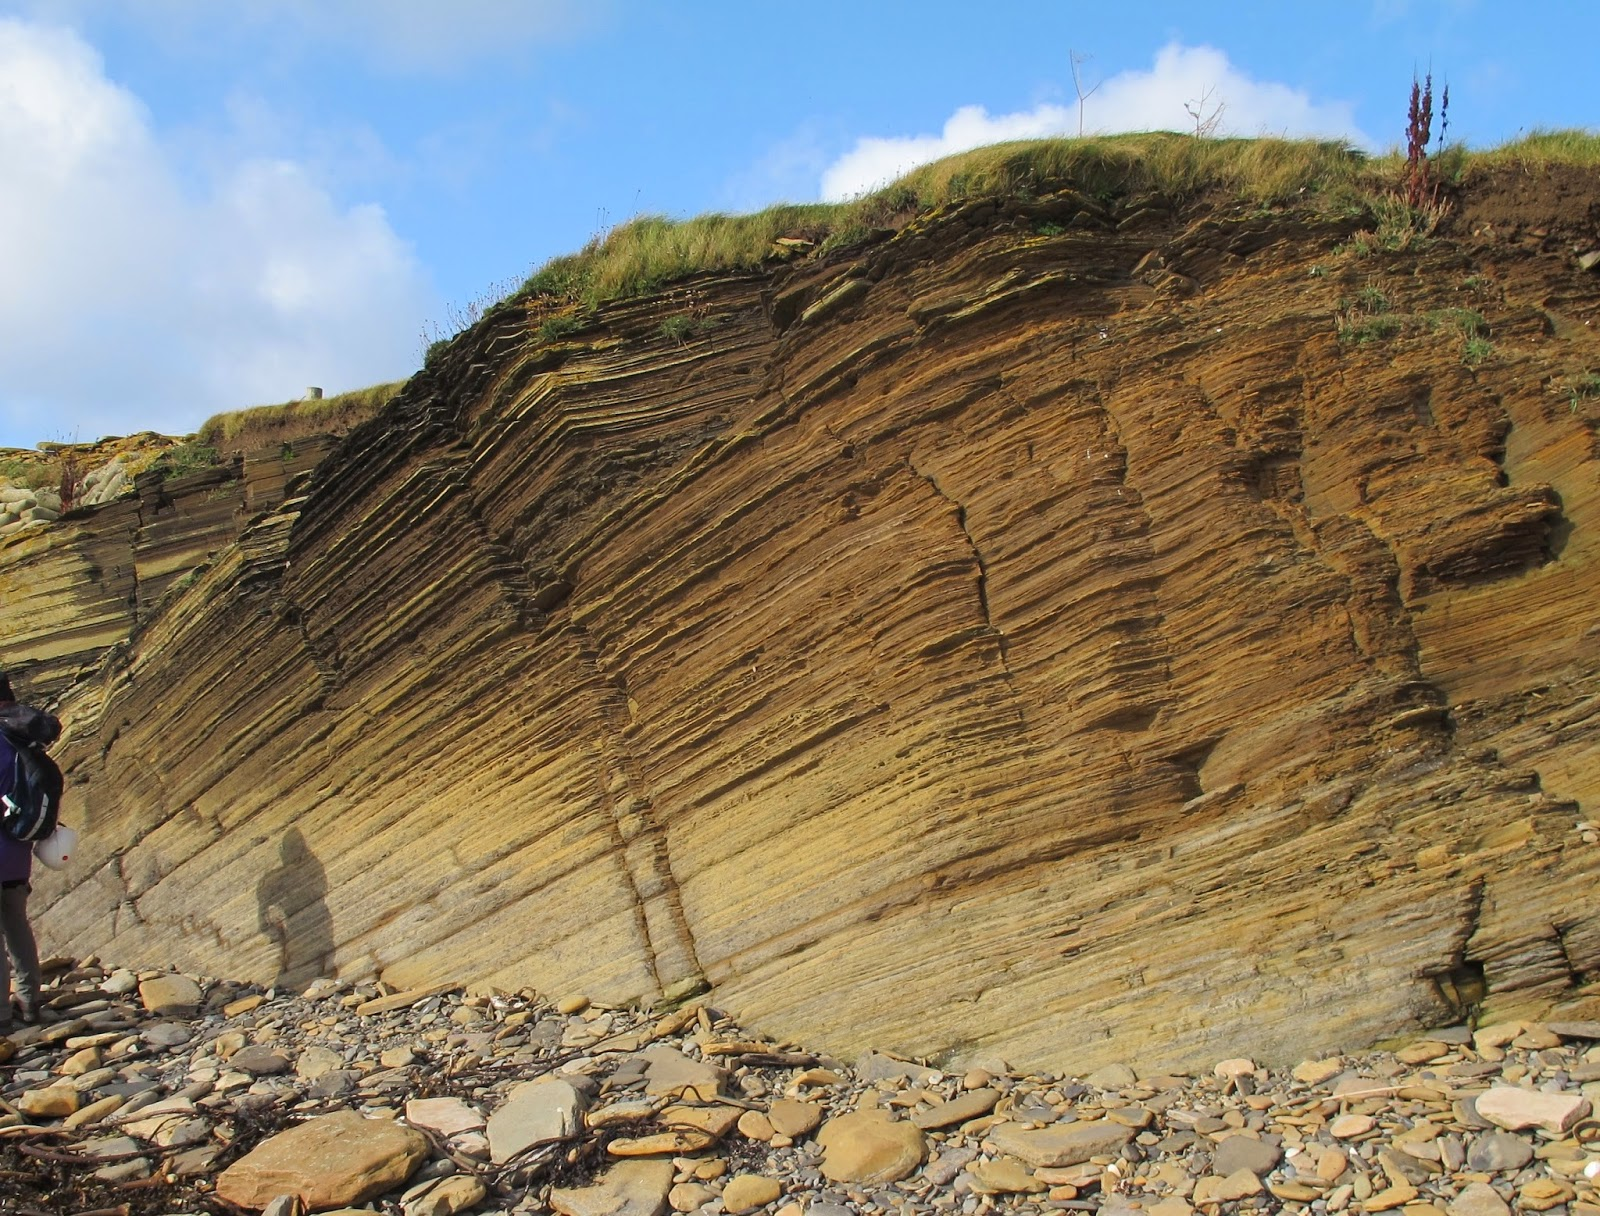 geology course notes Bsc geology or bachelor of science in geology is an undergraduate geology course geology is the science that comprises the study of the solid earth and the processes by which it is shaped and changed geology provides primary evidence for plate tectonics, the history of life and evolution, and.